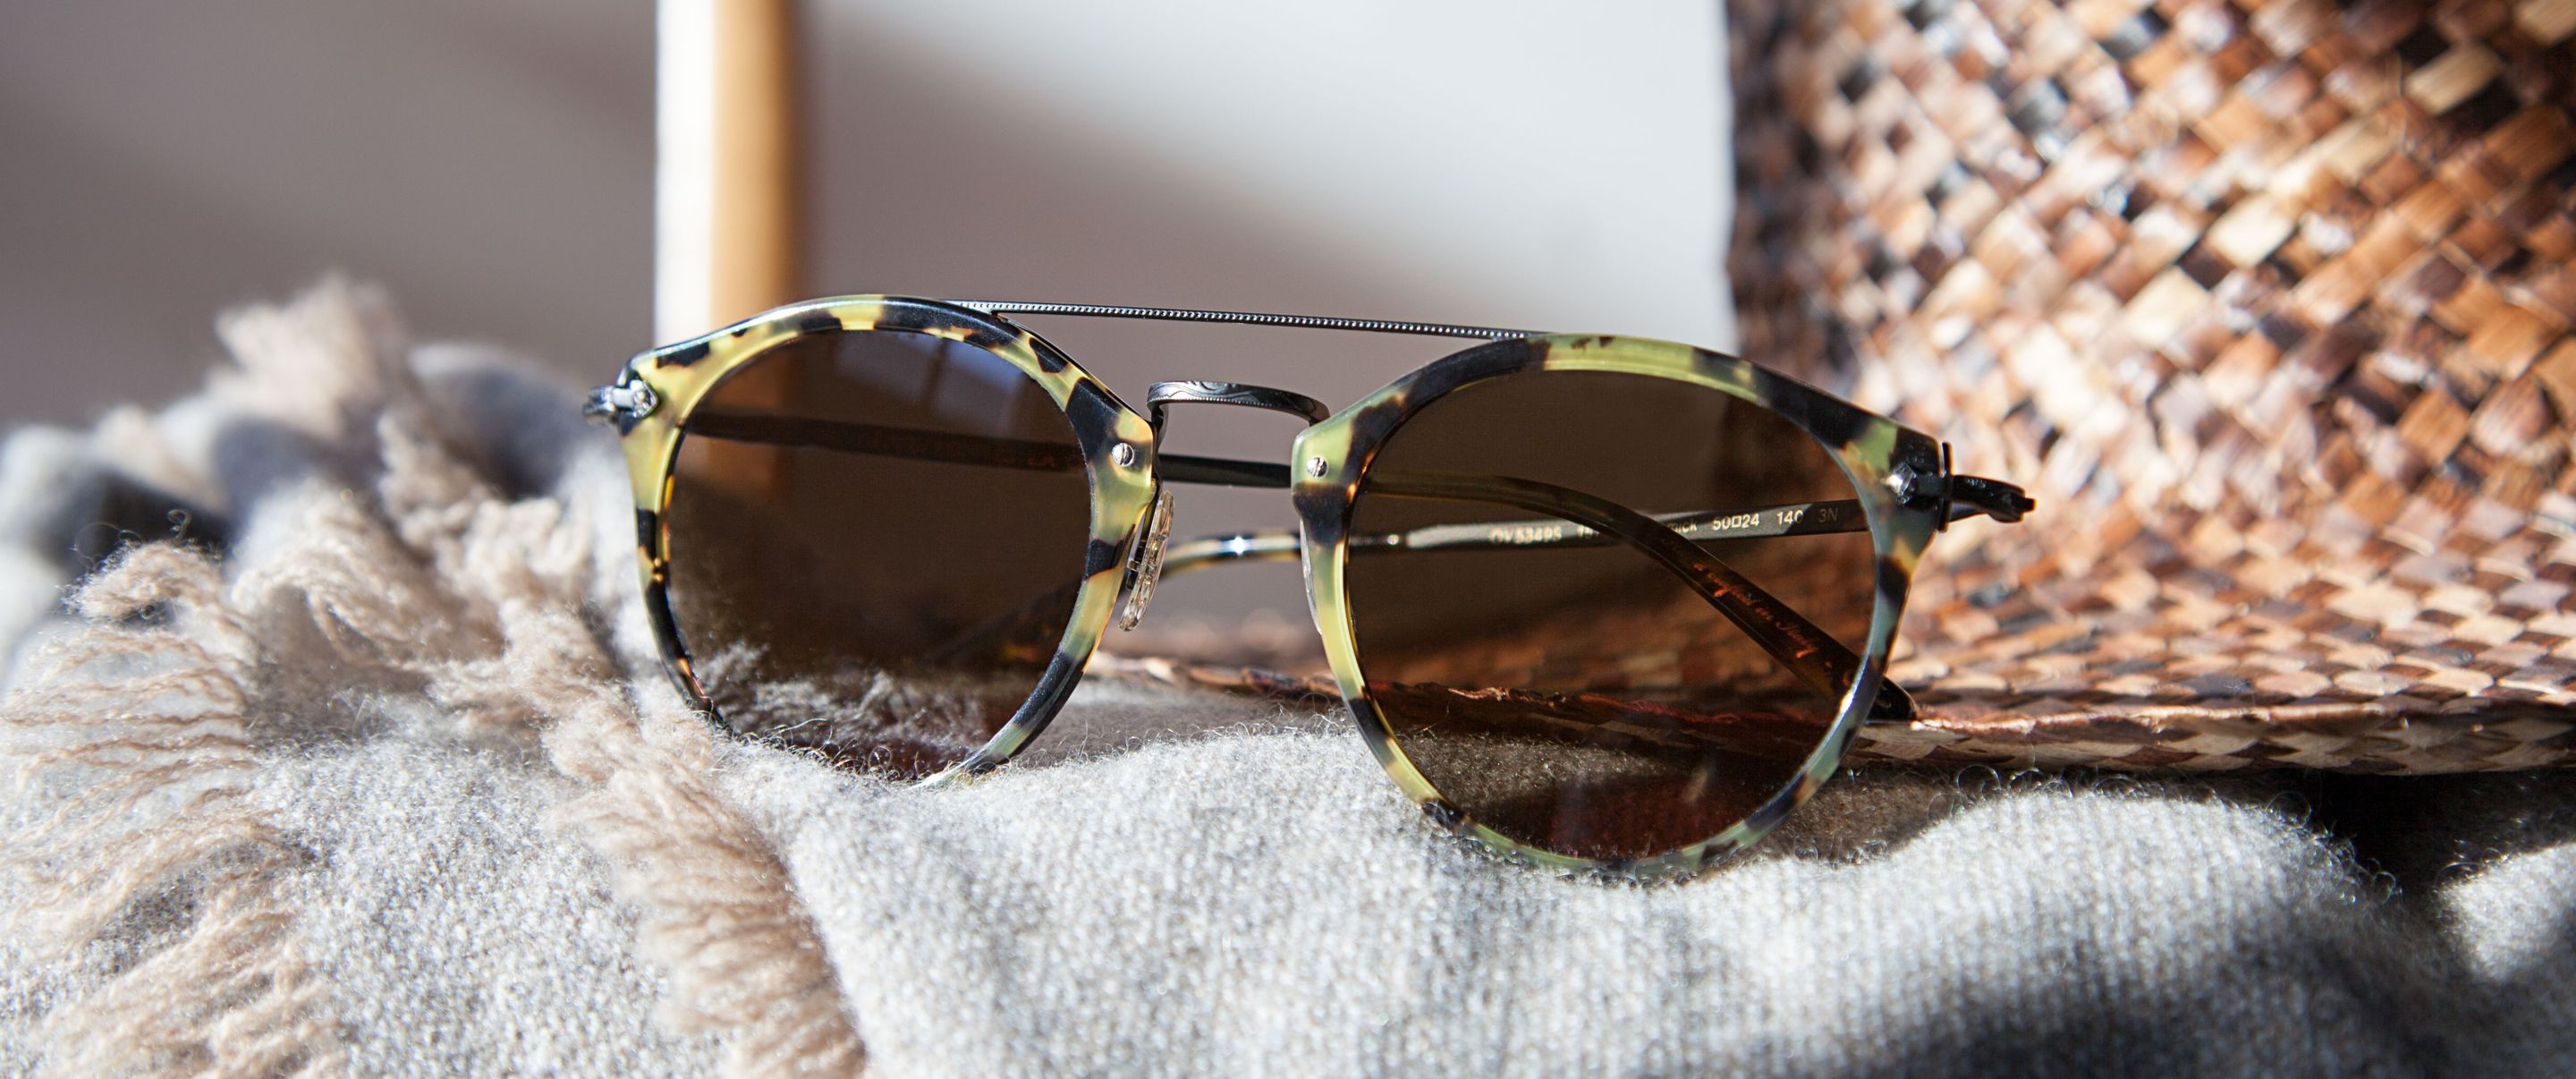 d6f88d162f Oliver Peoples Sunglasses   Frames Collection